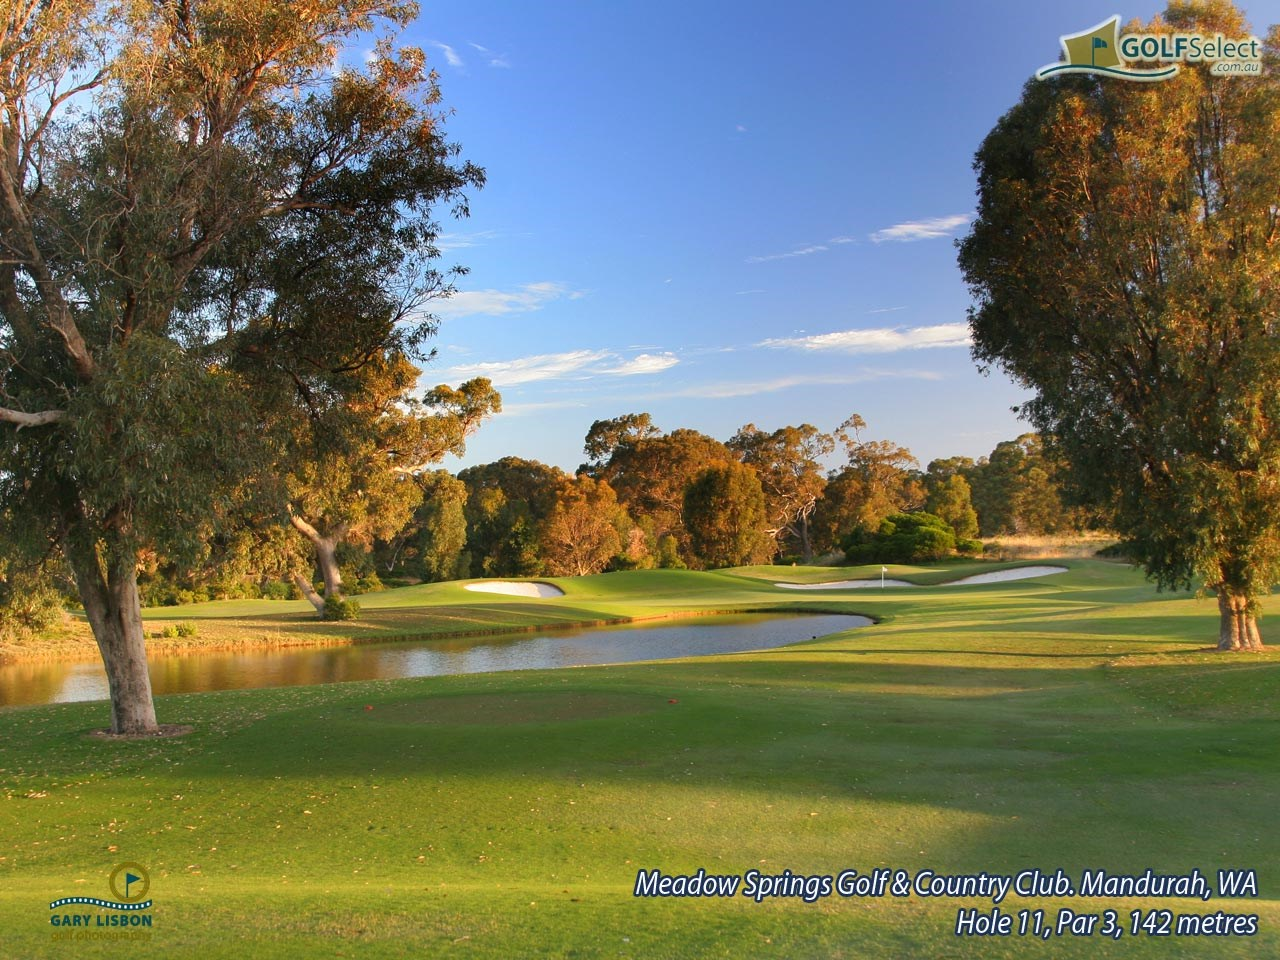 Meadow Springs Golf & Country Club Hole 11, Par 3, 142 metres